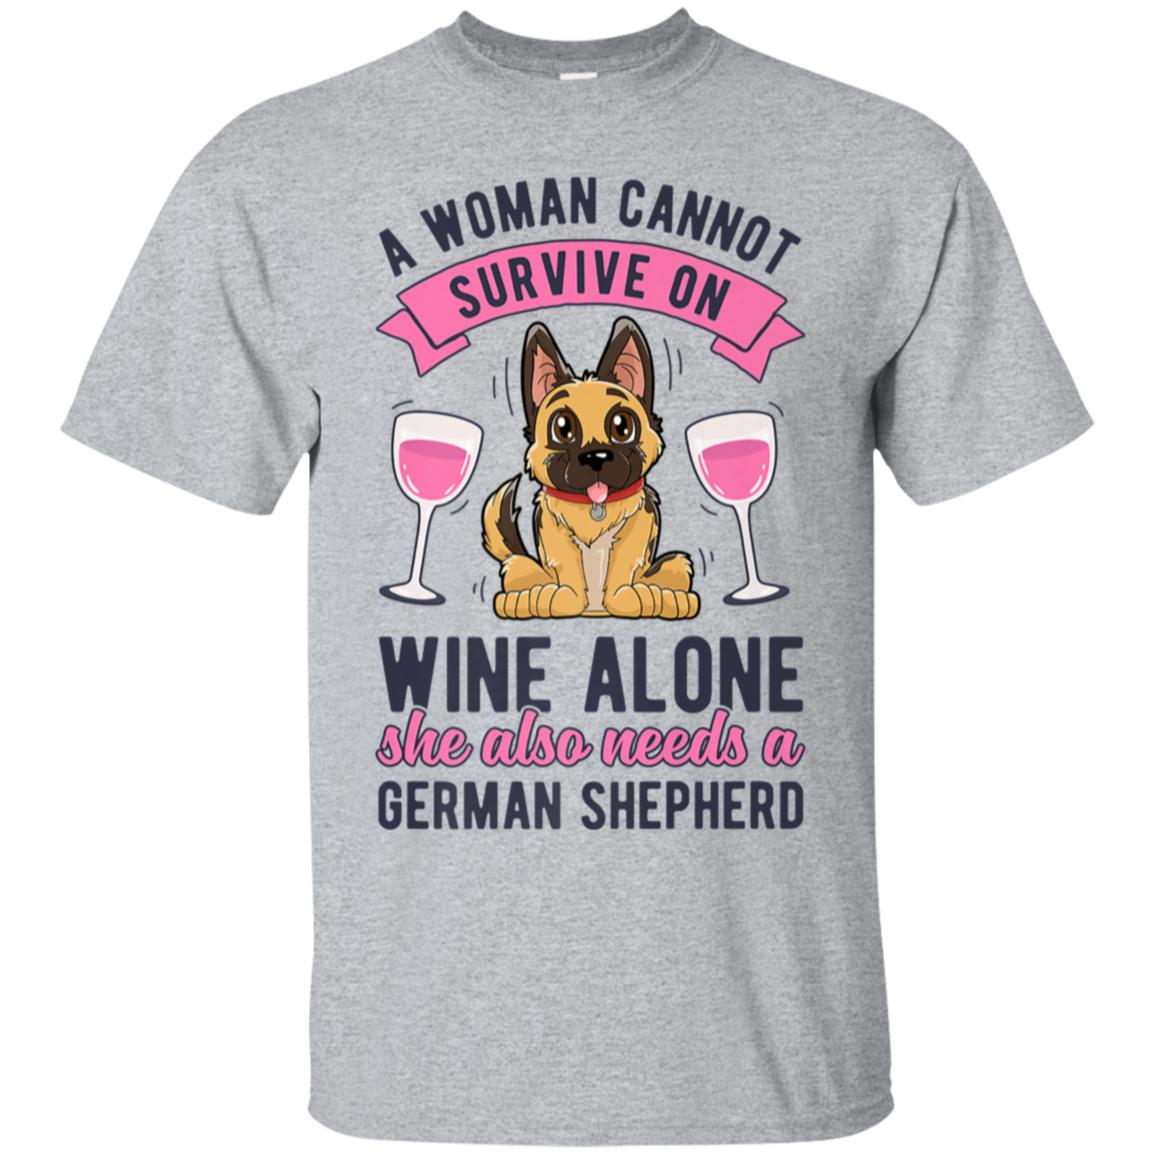 A Woman Cannot Survive on Wine Alone T shirt German Shepherd 99promocode